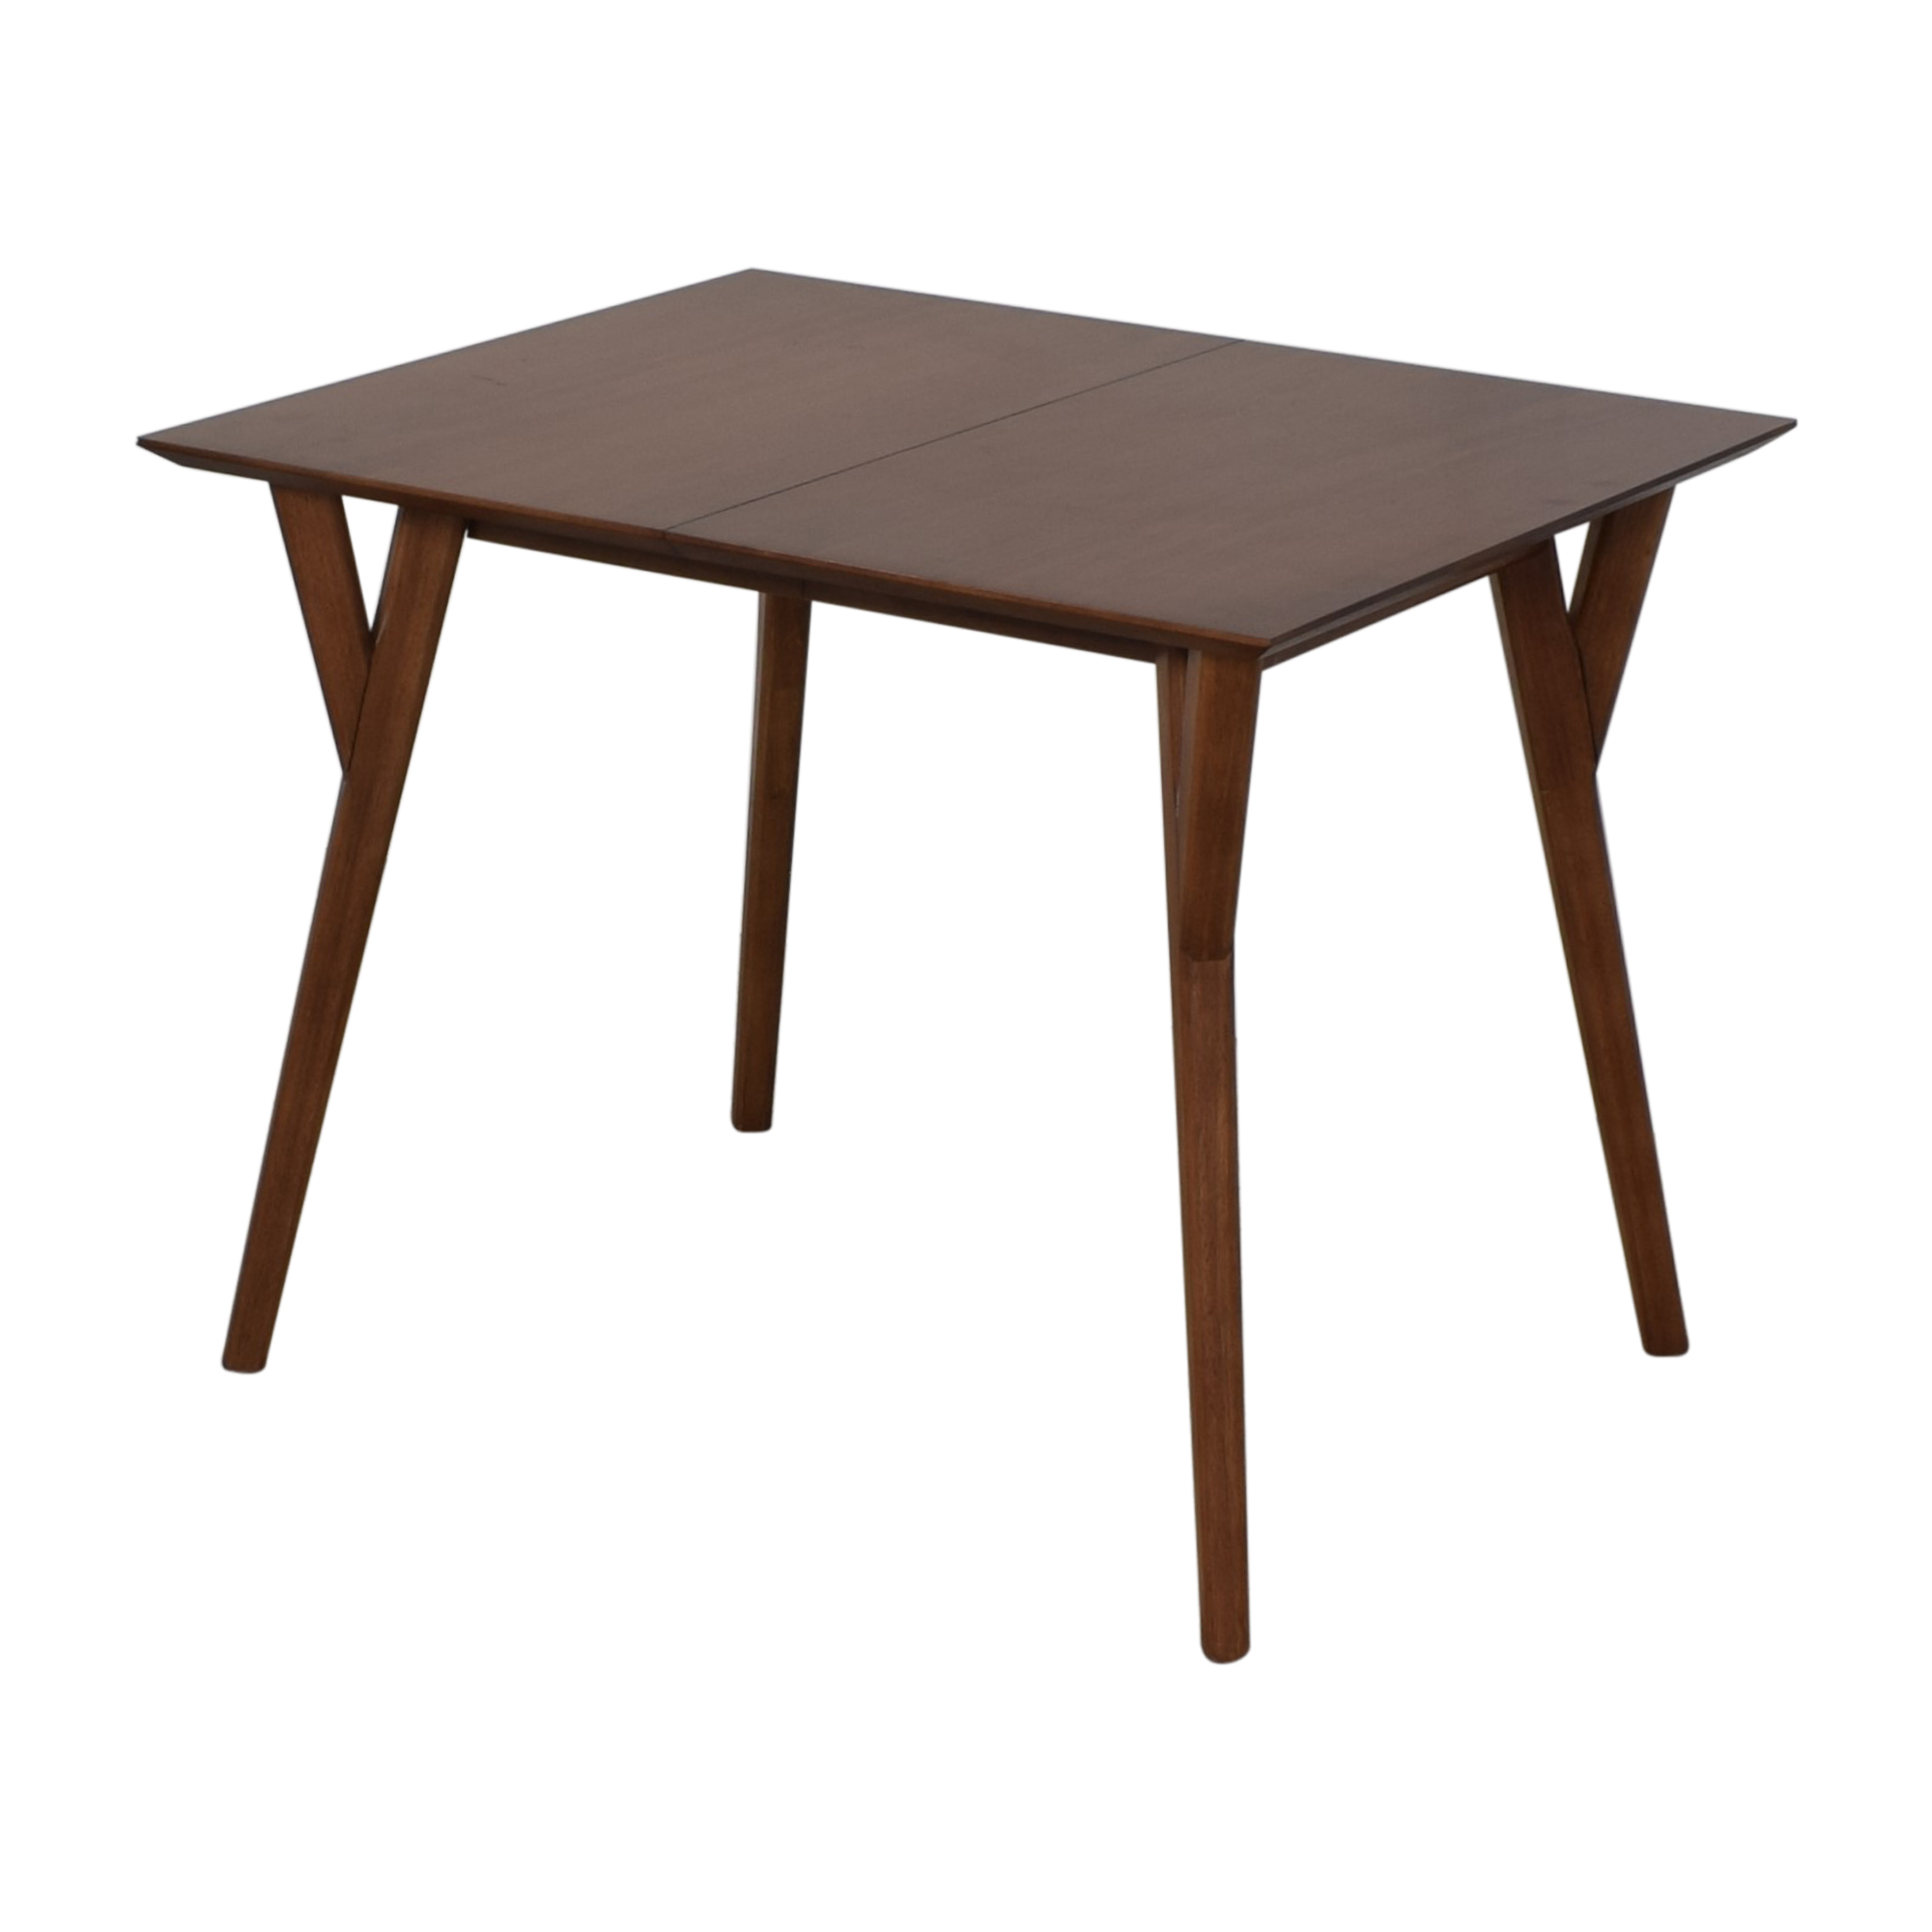 West Elm West Elm Mid-Century Expandable Dining Table dimensions